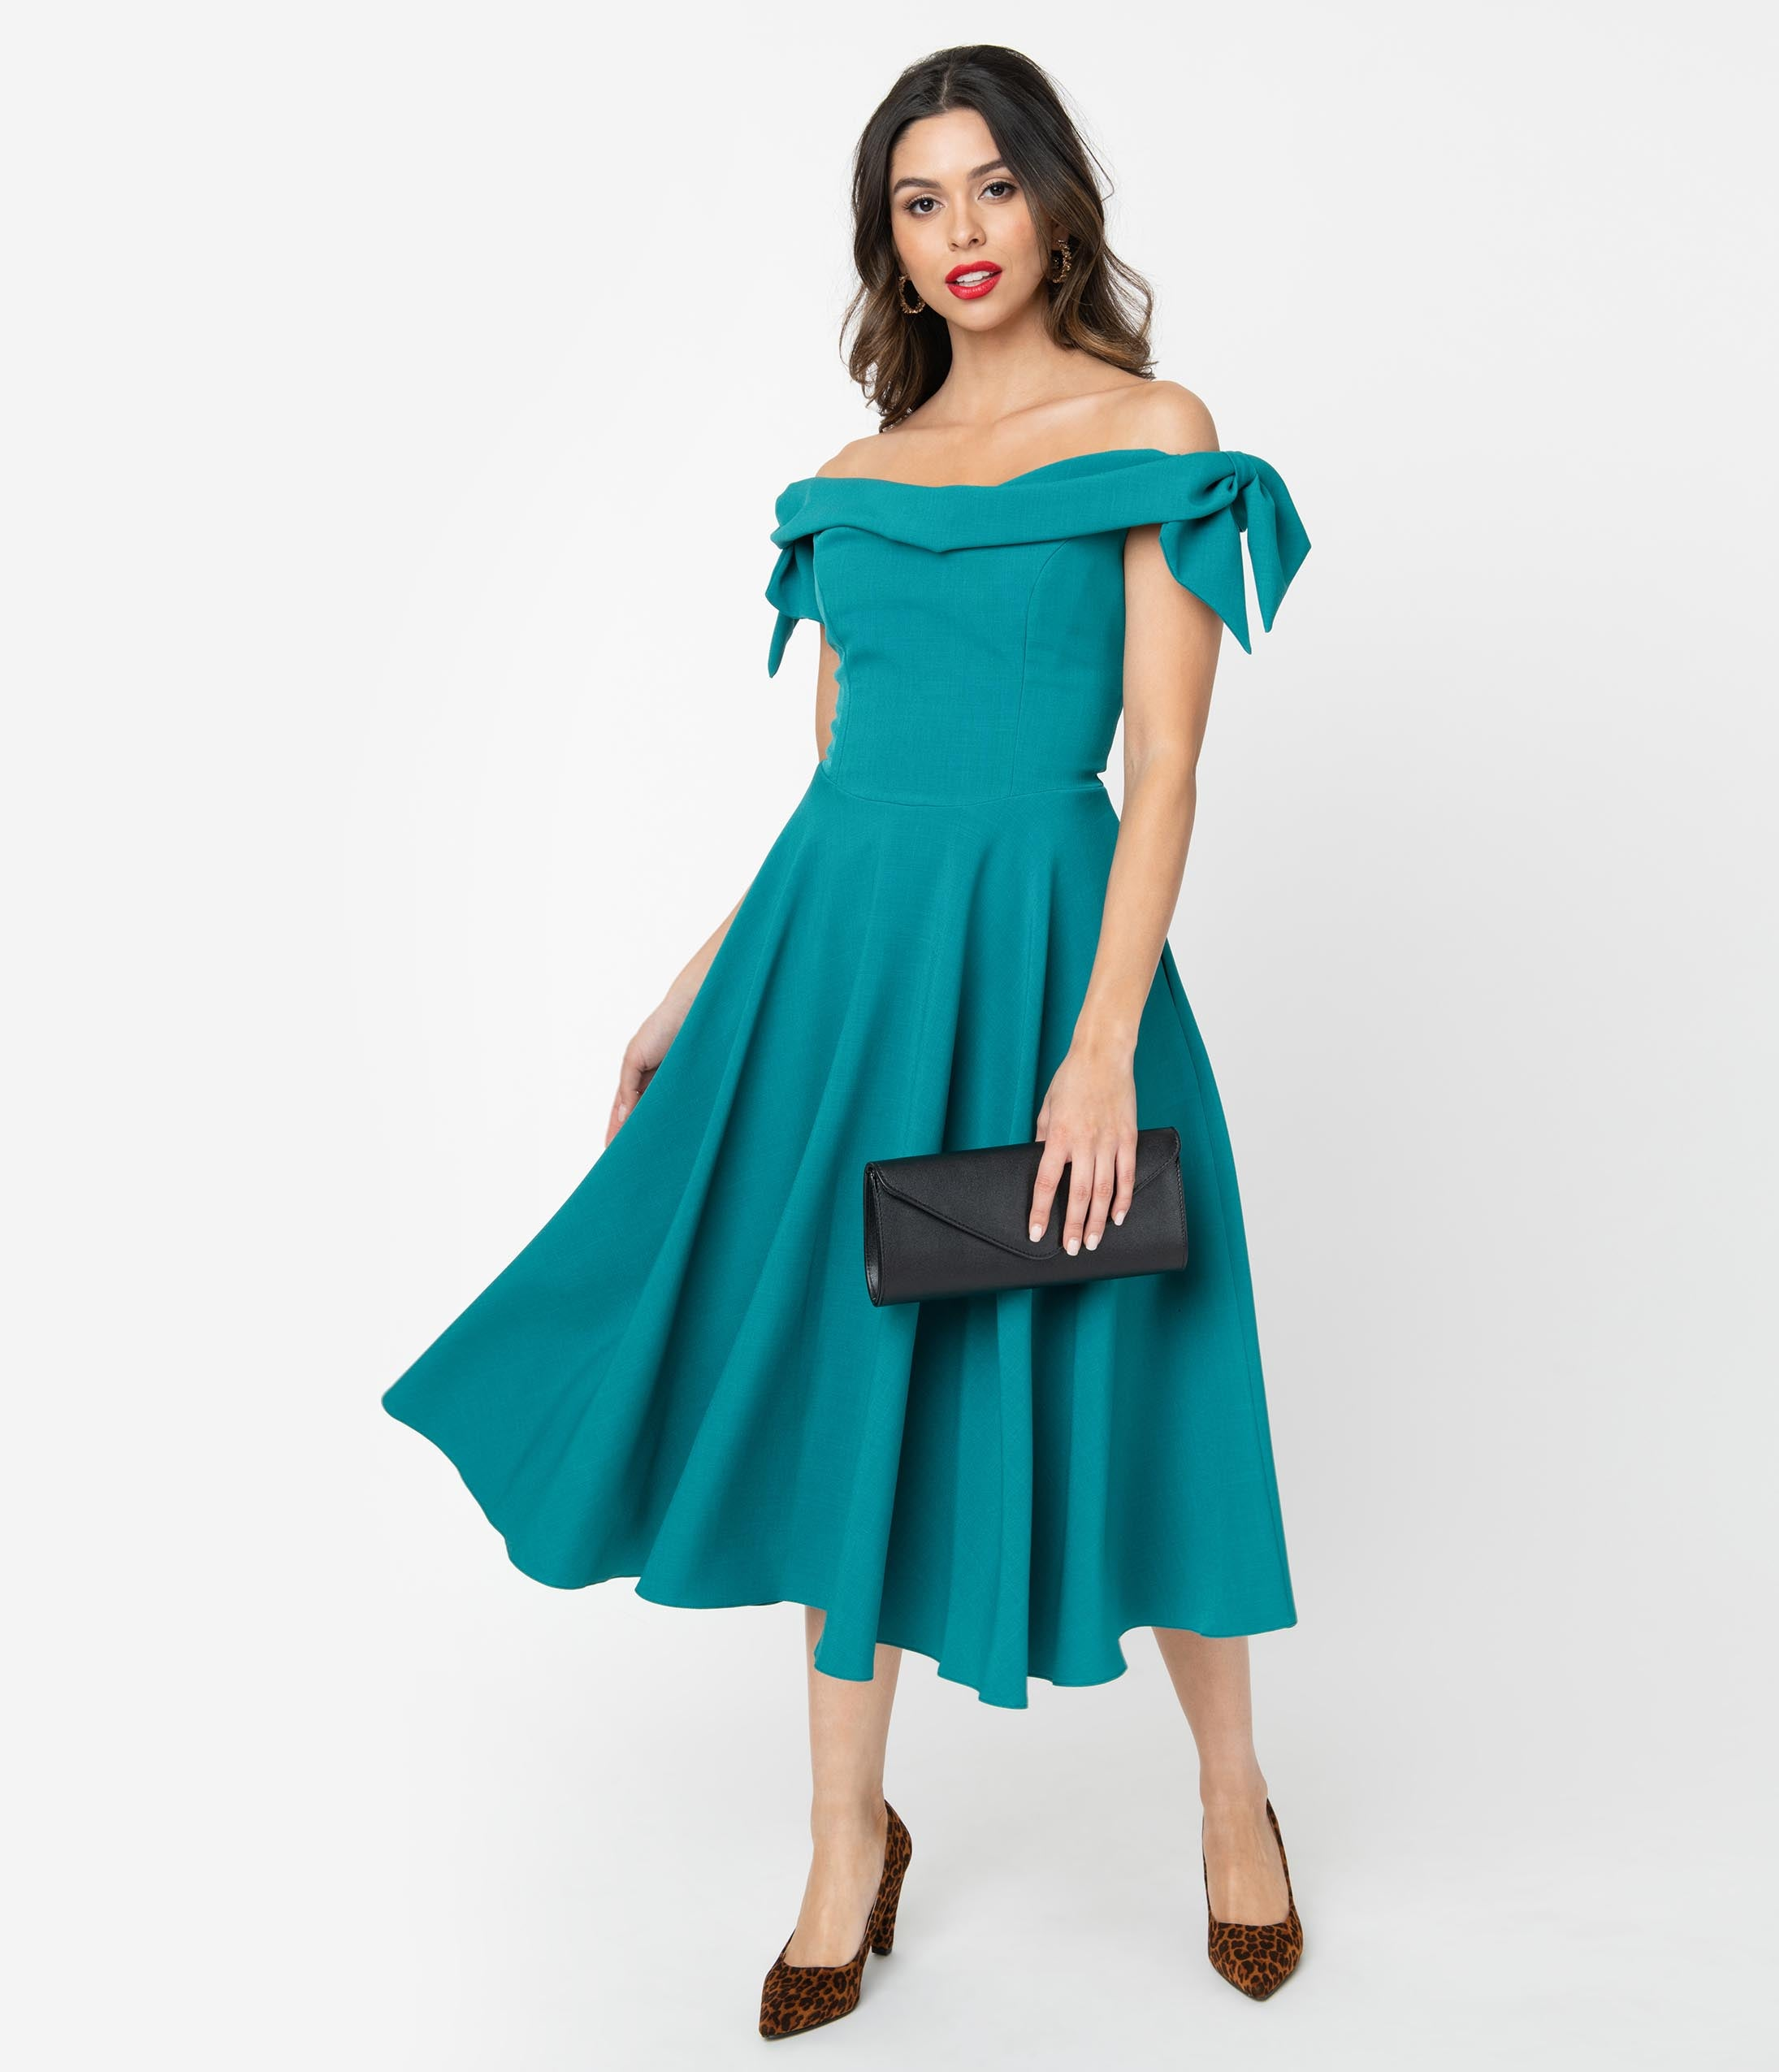 1950s Dresses, 50s Dresses | 1950s Style Dresses The Pretty Dress Company Teal Off The Shoulder Tilly Swing Dress $198.00 AT vintagedancer.com